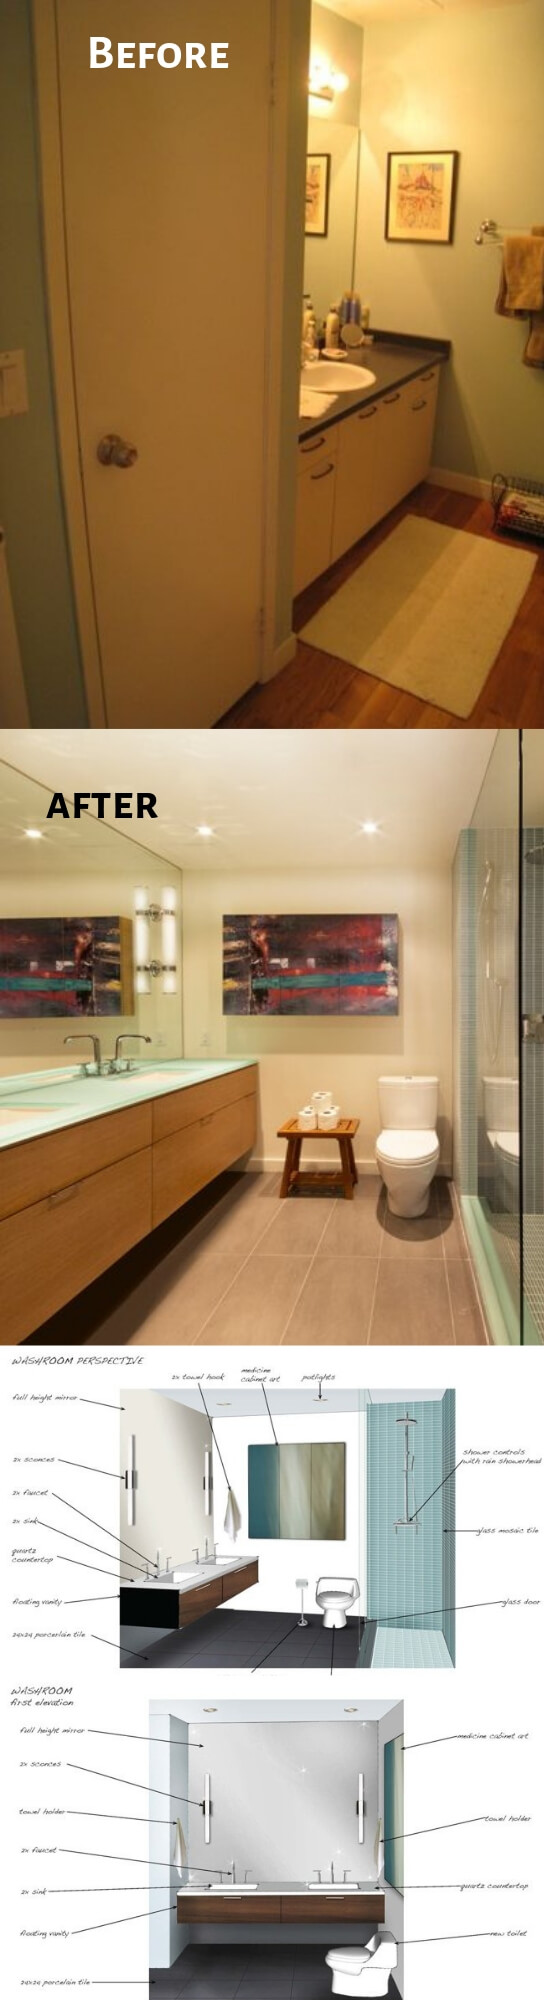 Artistic Remodel for a Bathroom